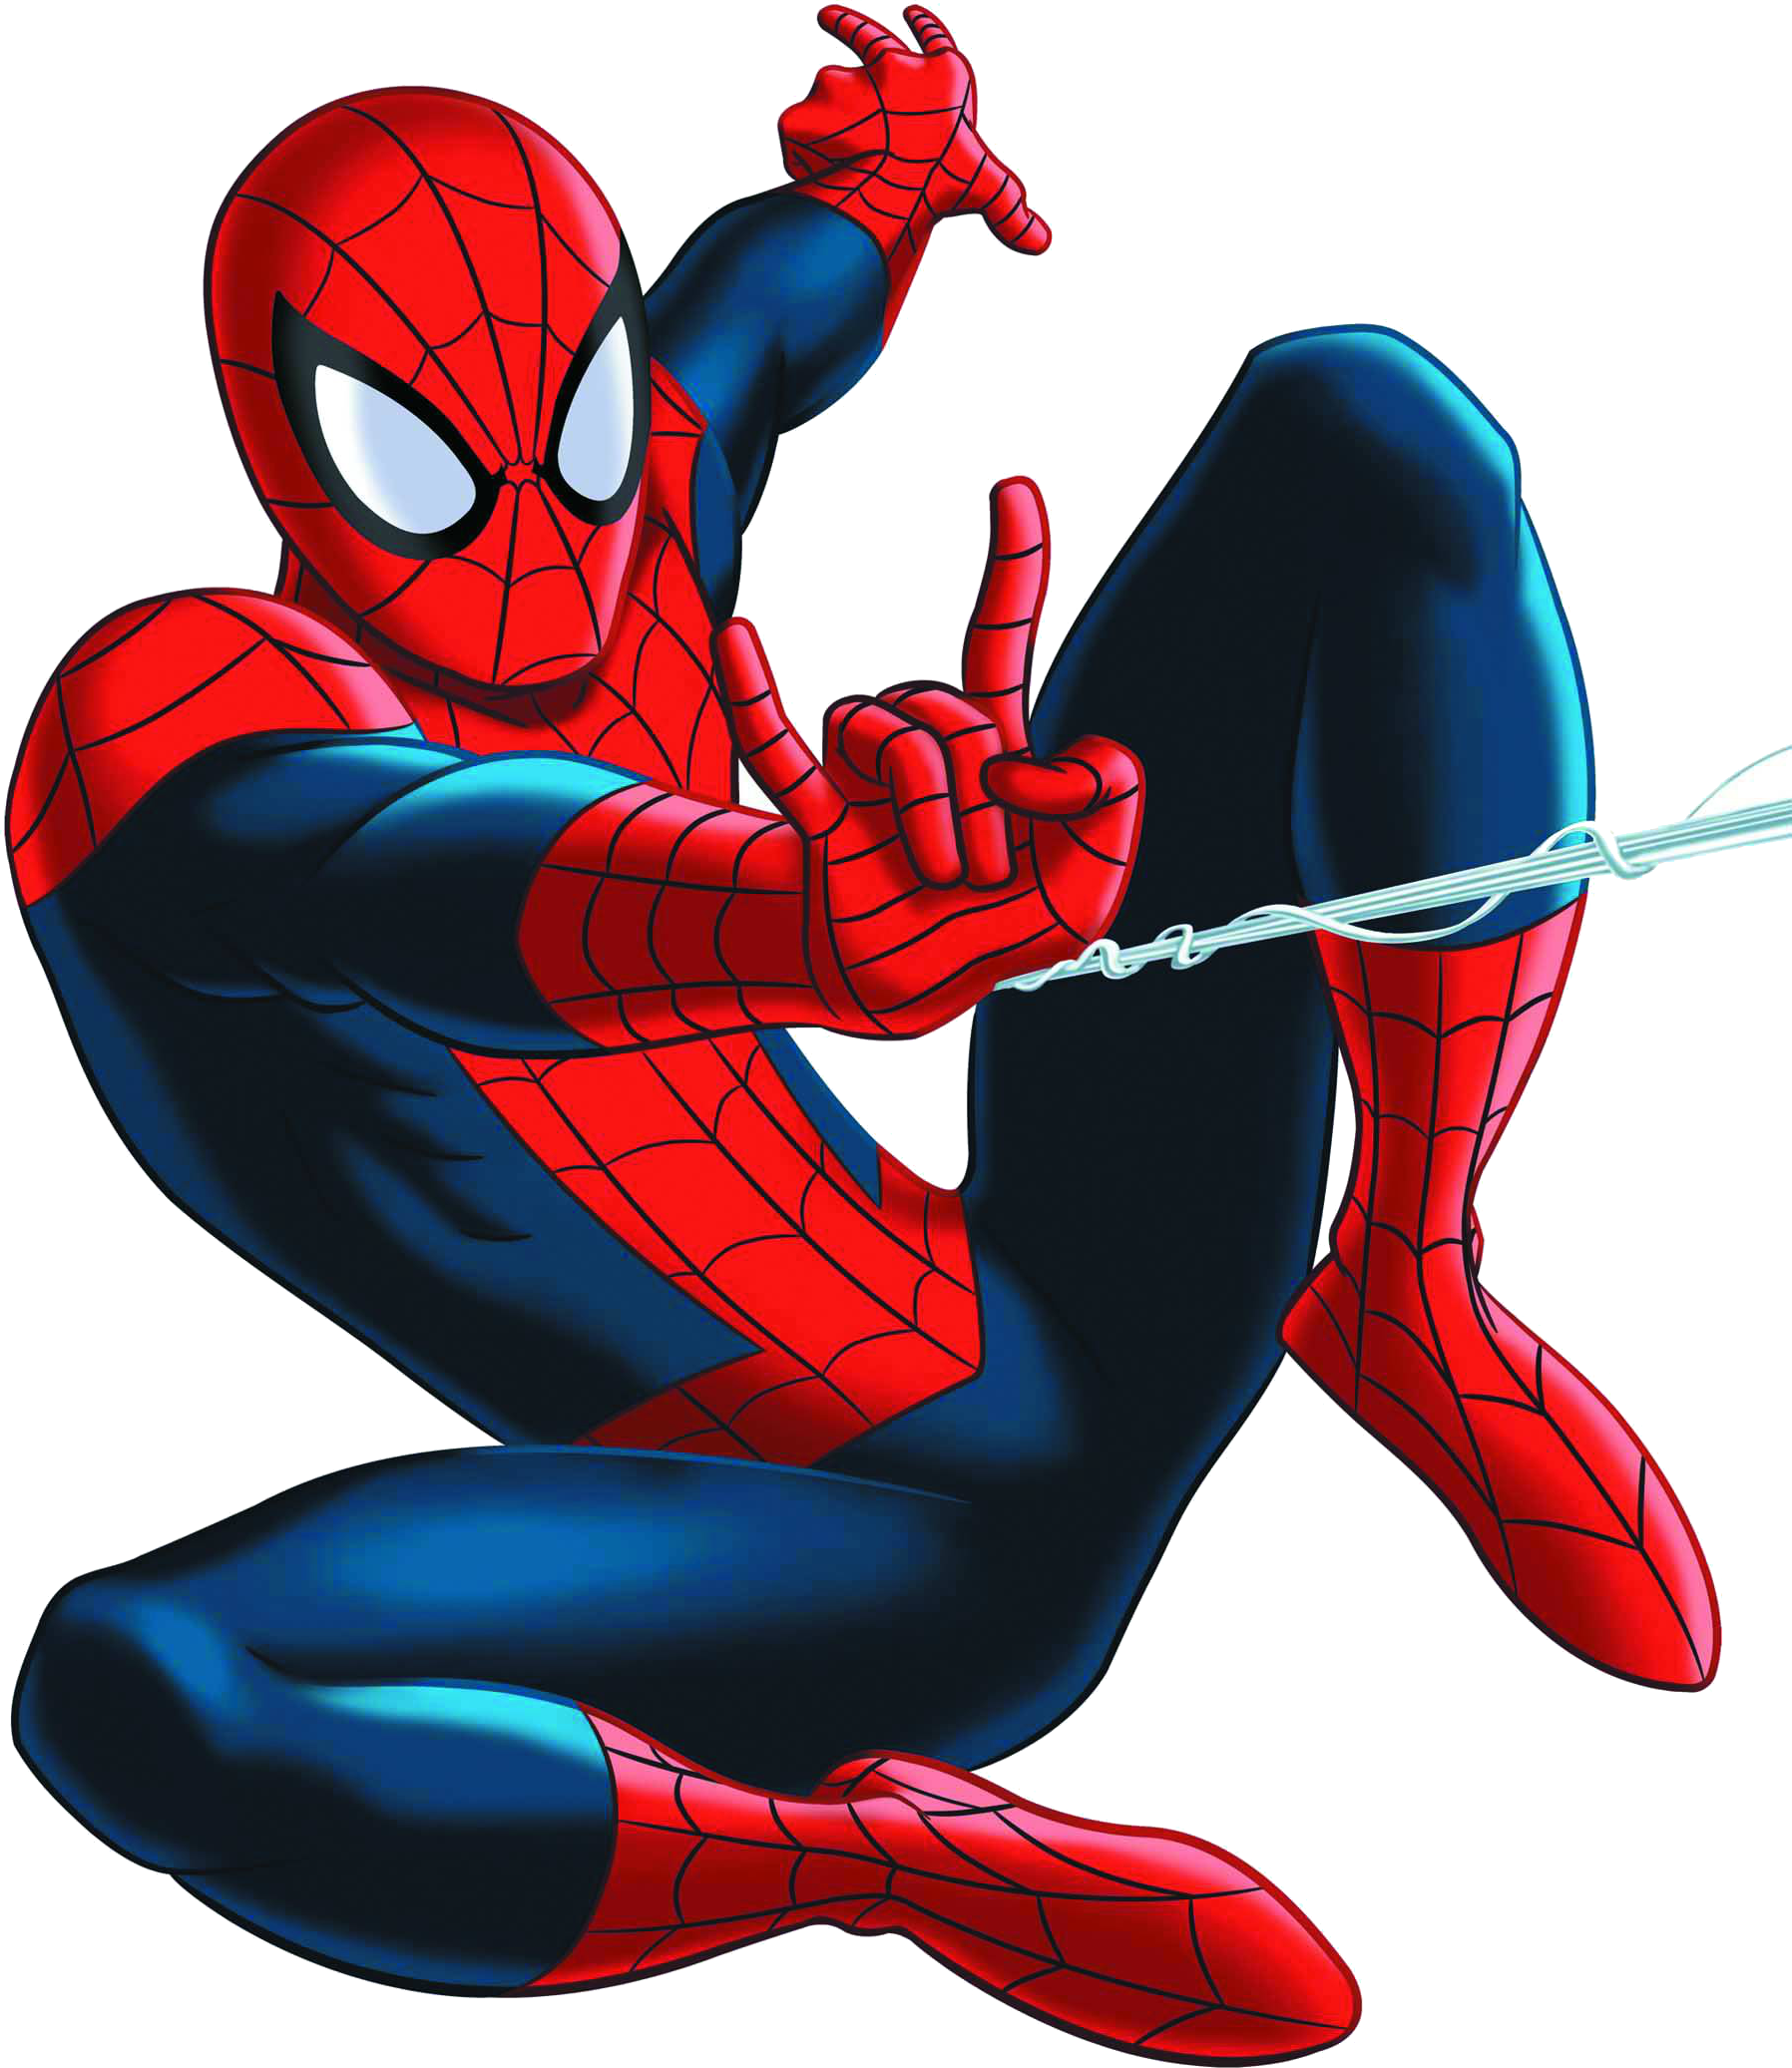 Spiderman HD PNG-PlusPNG.com-1796 - Spiderman HD PNG